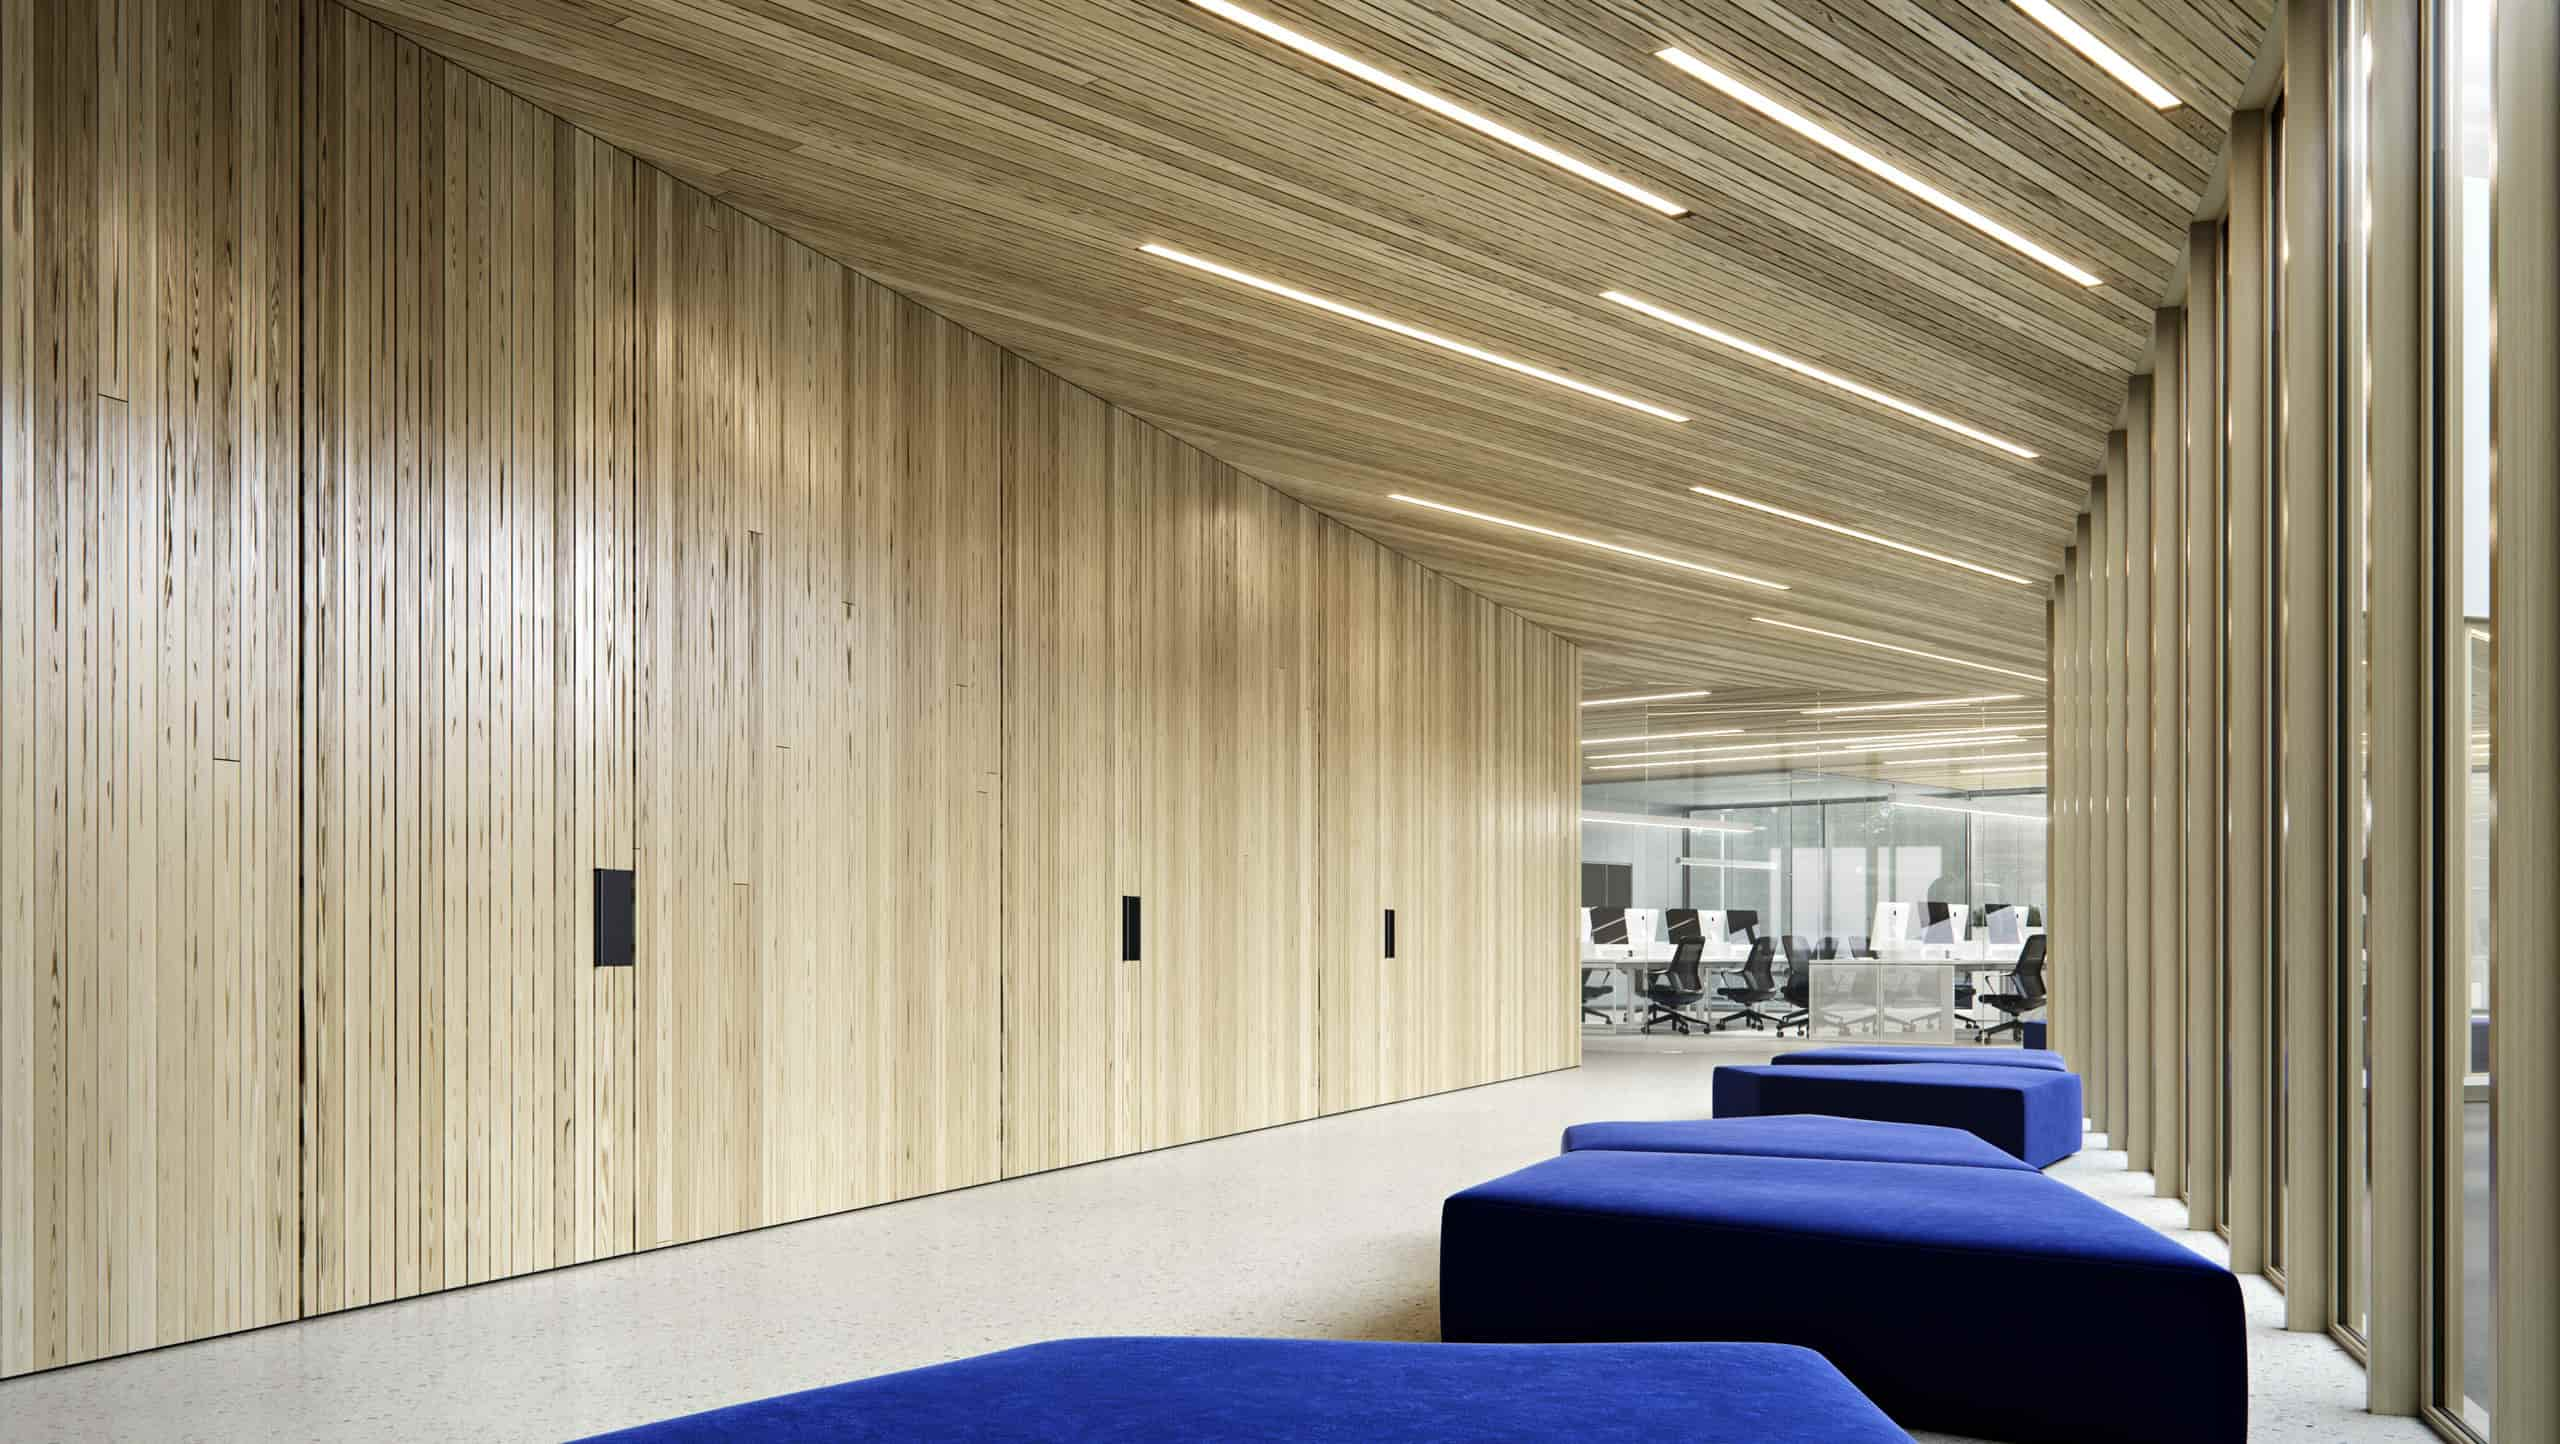 IT office building hall interior design